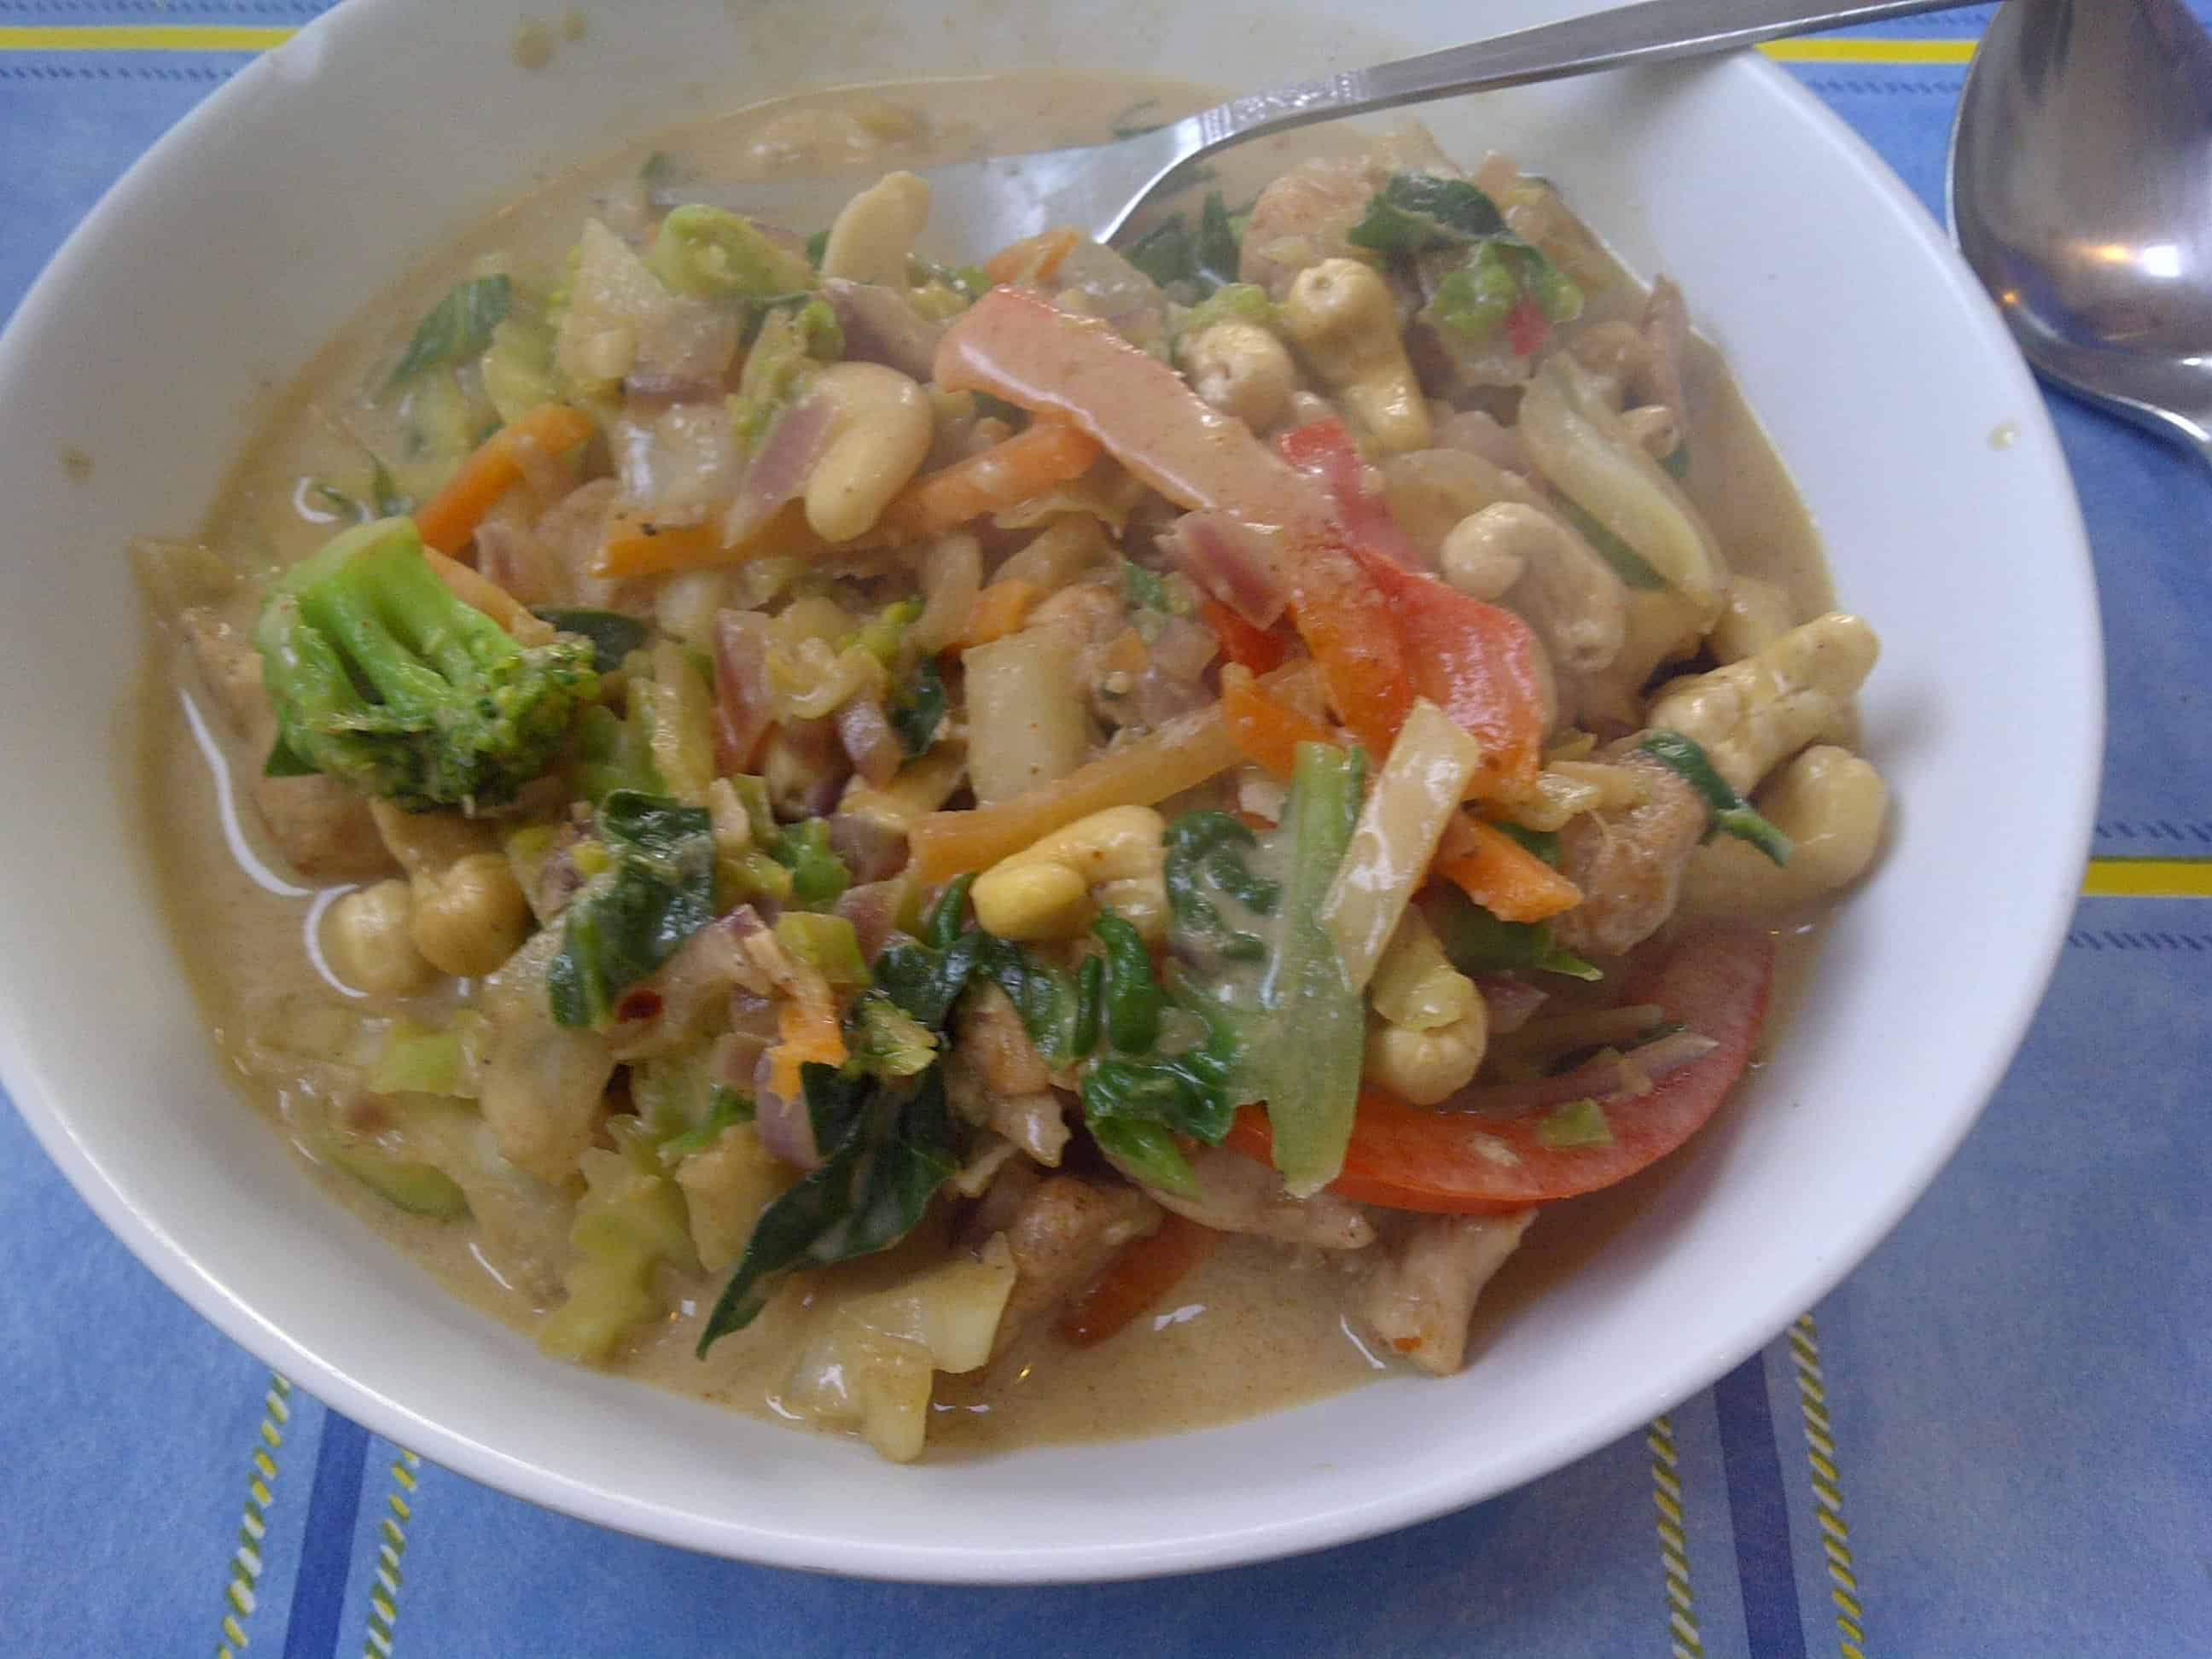 Mmm, thai curry - so tasty, and so good for you!